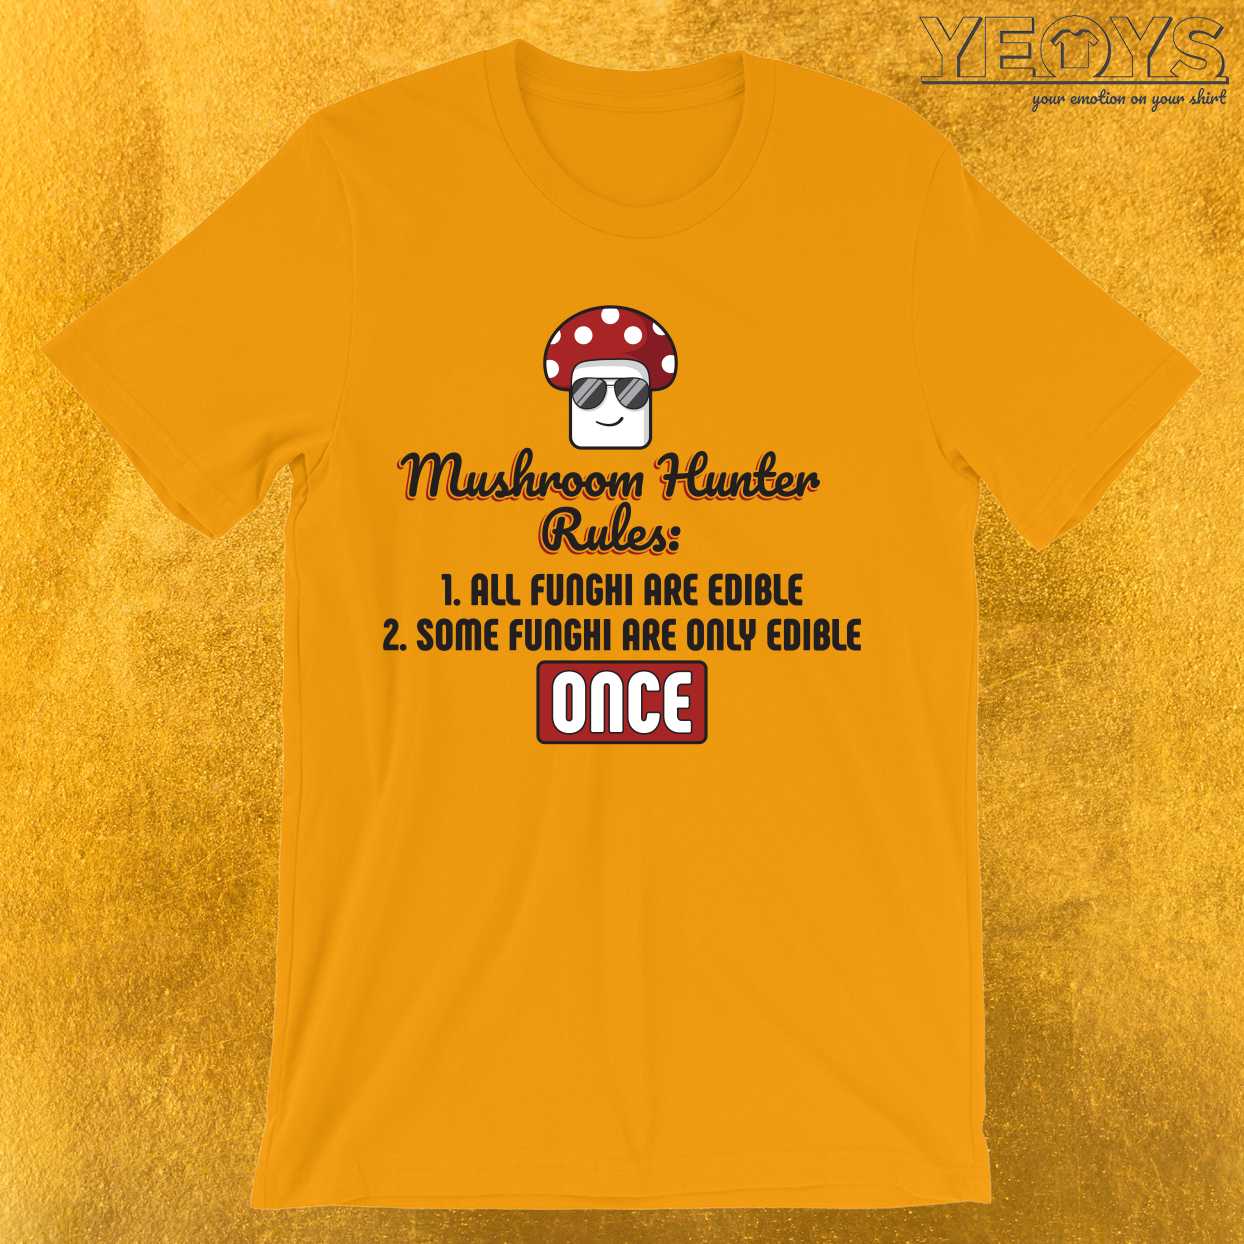 Mushroom Hunter Rules Edible Funghi T-Shirt